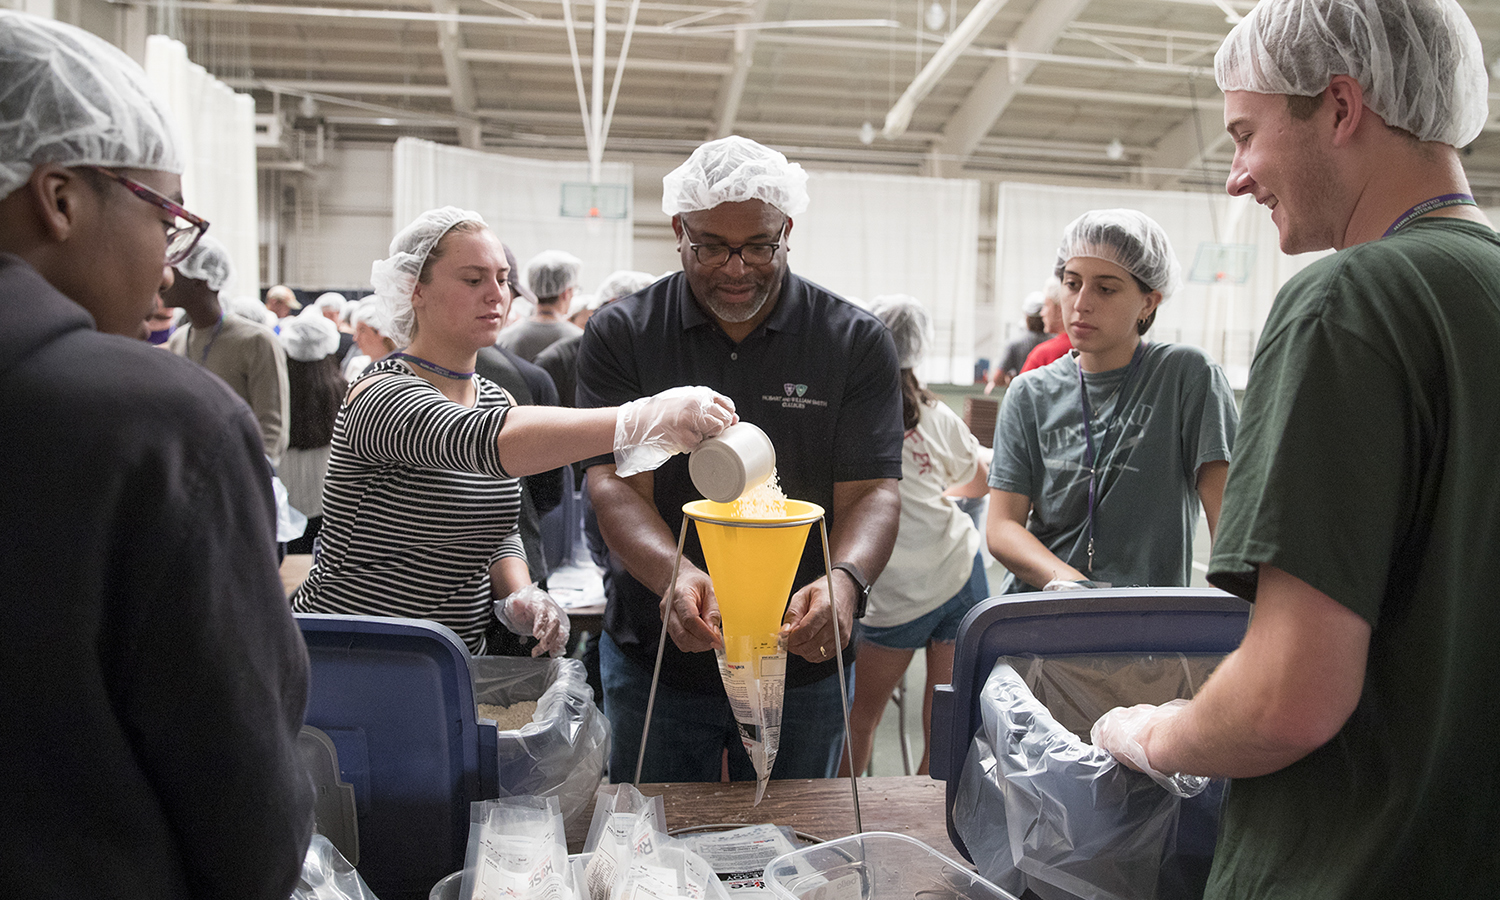 Maddie Ferguson '21 (right) looks on as Emma Ibbotson '21 helps President Gregory J. VIncent '83 package a meal for Rise Against Hunger in the Robert A. Bristol '31 Field House.